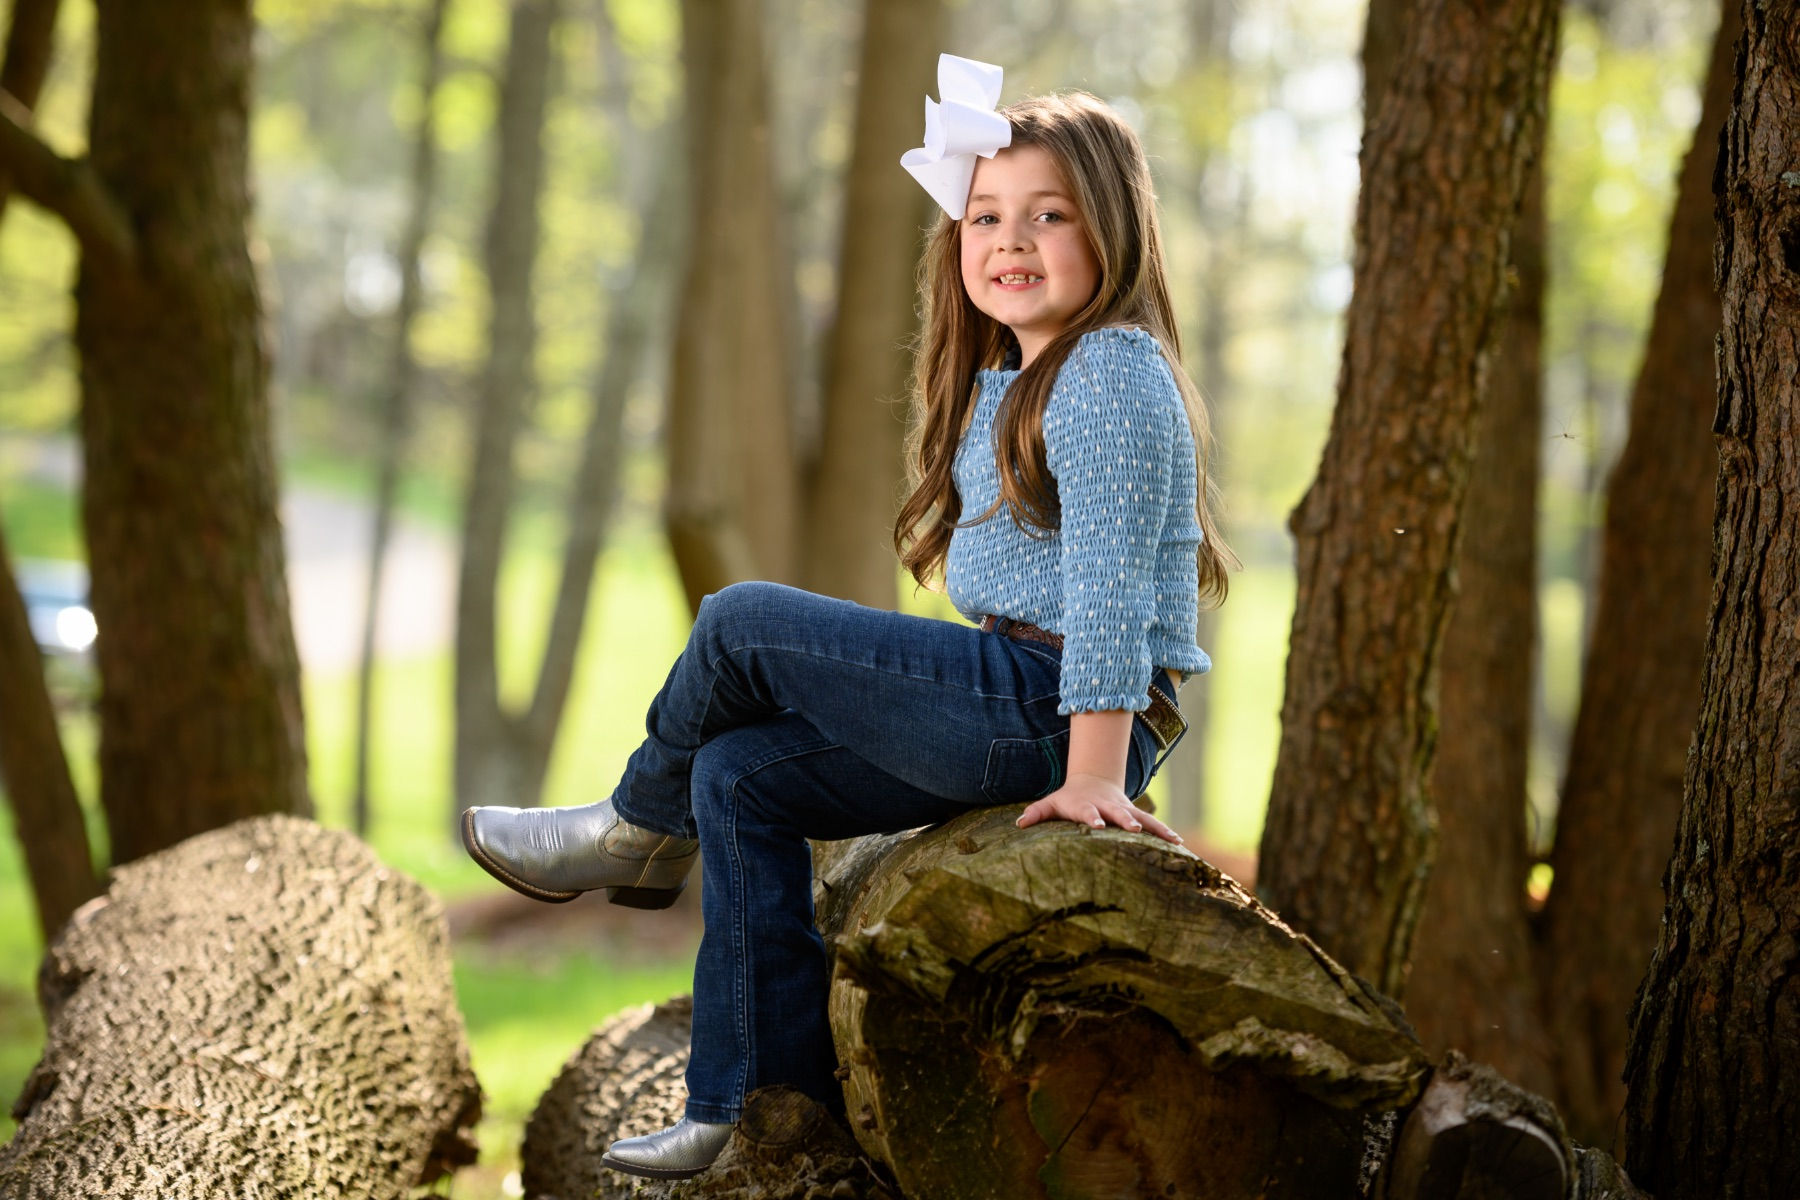 Henley Thurman, a 6-year-old white girl with brown hair, smiles as she sits on a broken tree trunk with her legs crossed. She is wearing grey boots, navy jeans, light blue top and a big white bow in her hair.